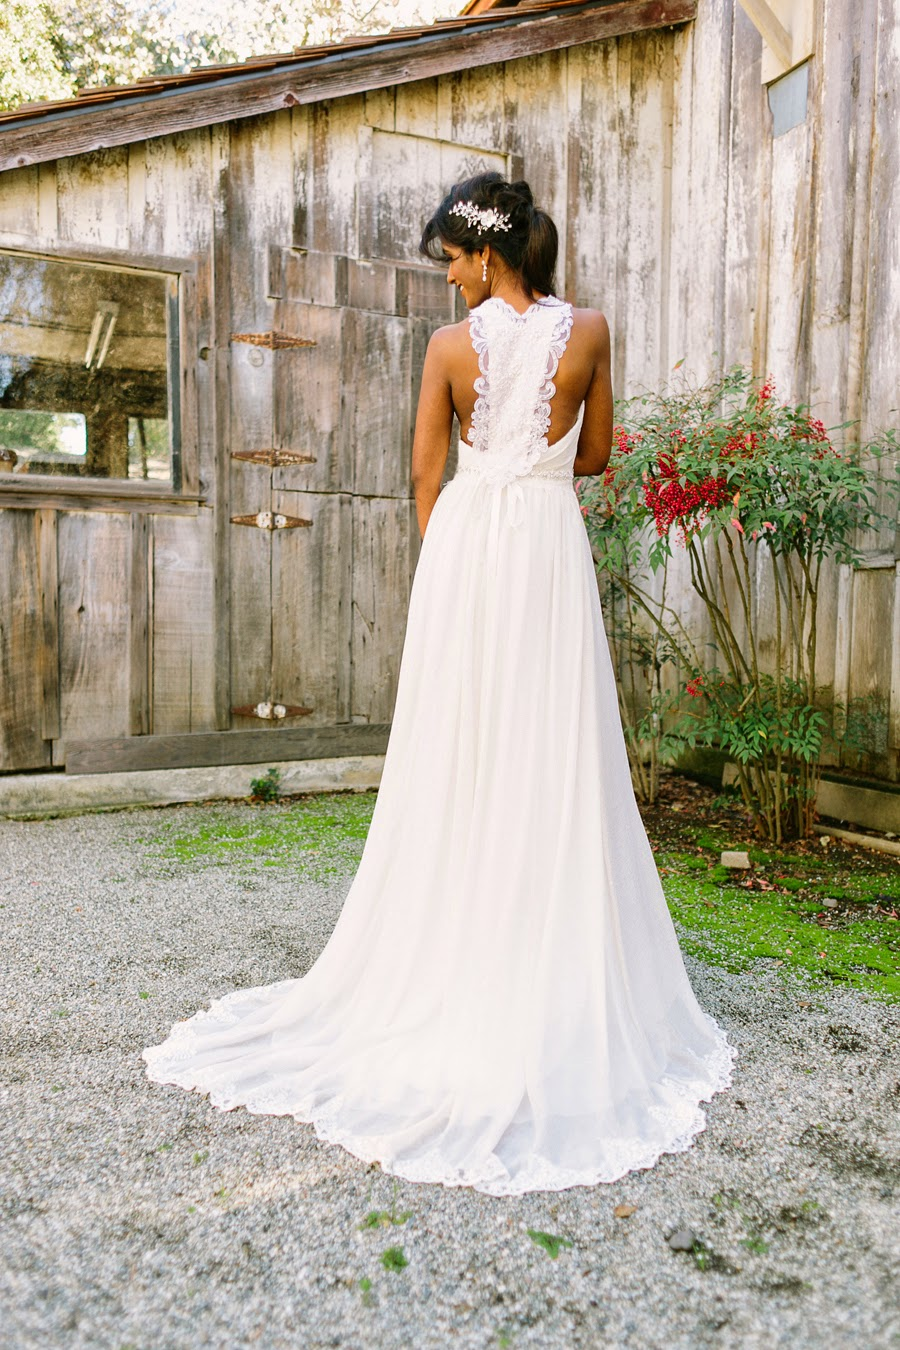 Indie Wedding Dresses | Anatomy Bridal Designer Trunk Show Of Indie Wedding Dresses